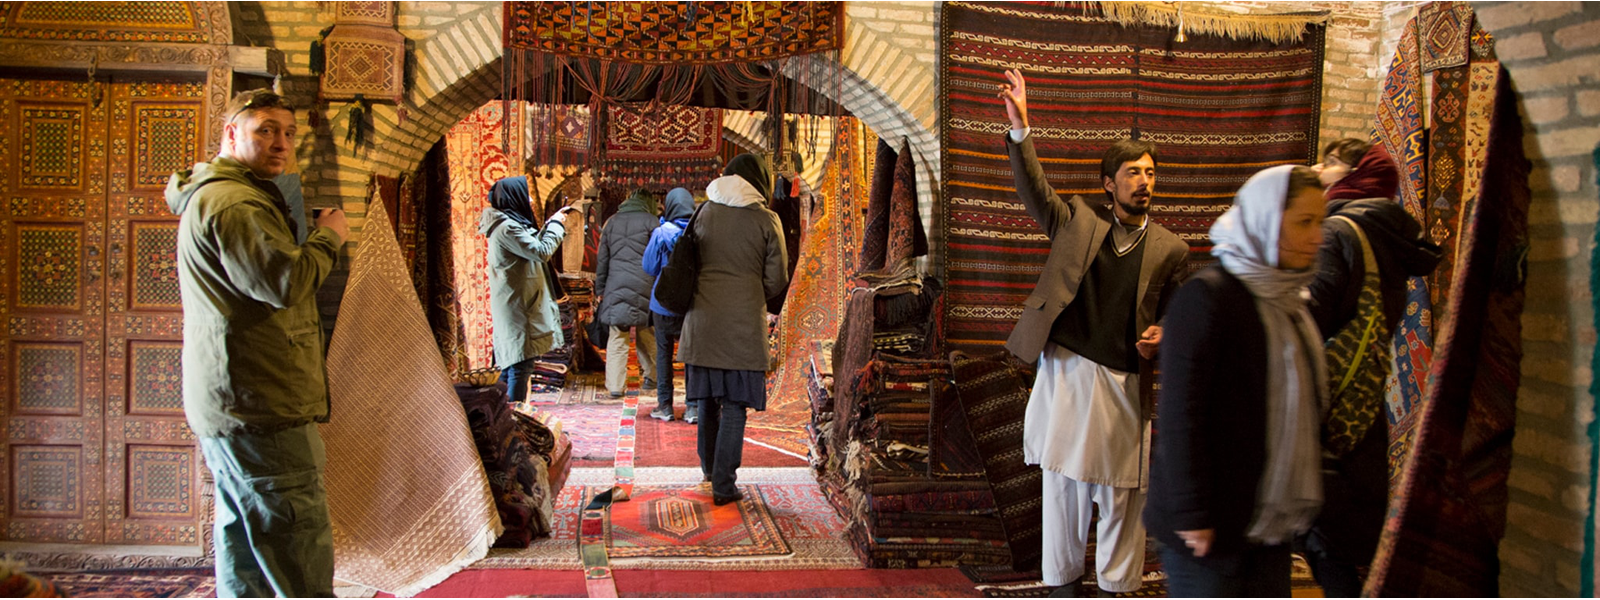 The Afghan Carpet Project